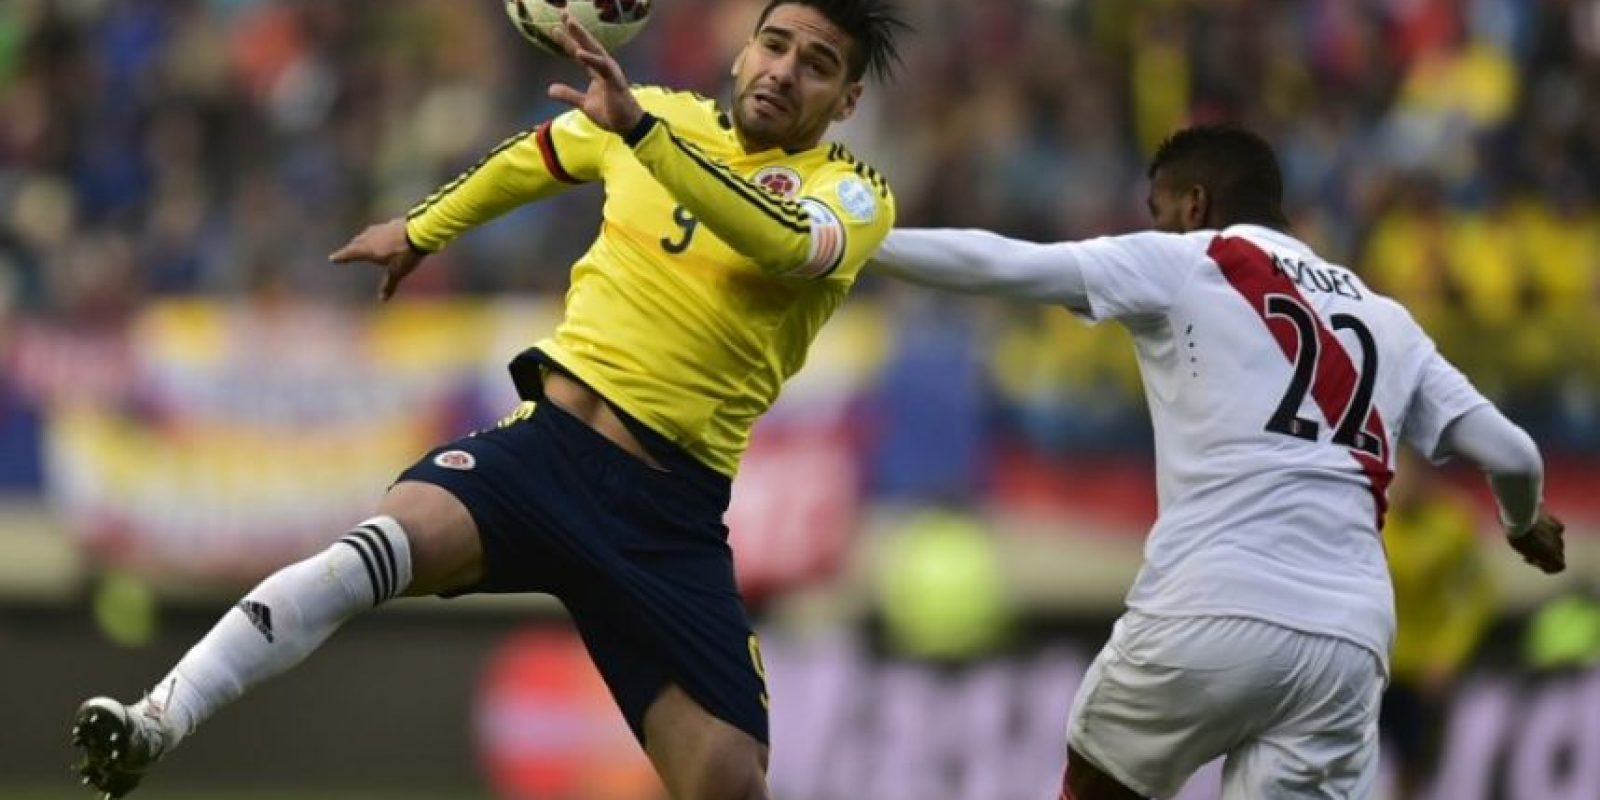 2. Radamel Falcao Foto: AFP